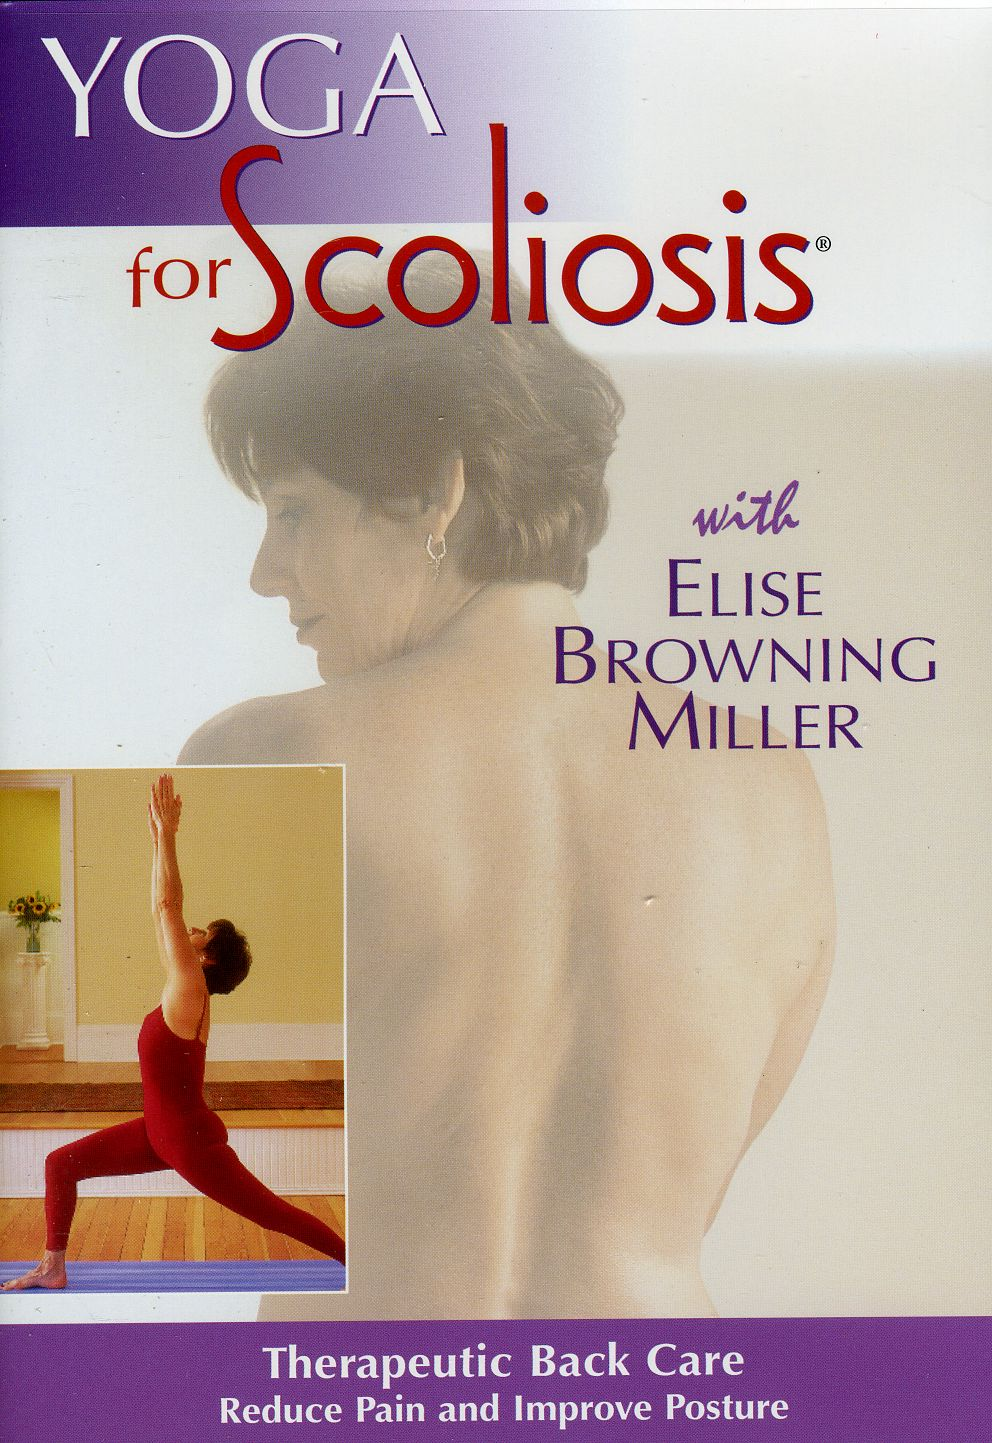 Yoga for Scoliosis with Elise Browning Miller (DVD)